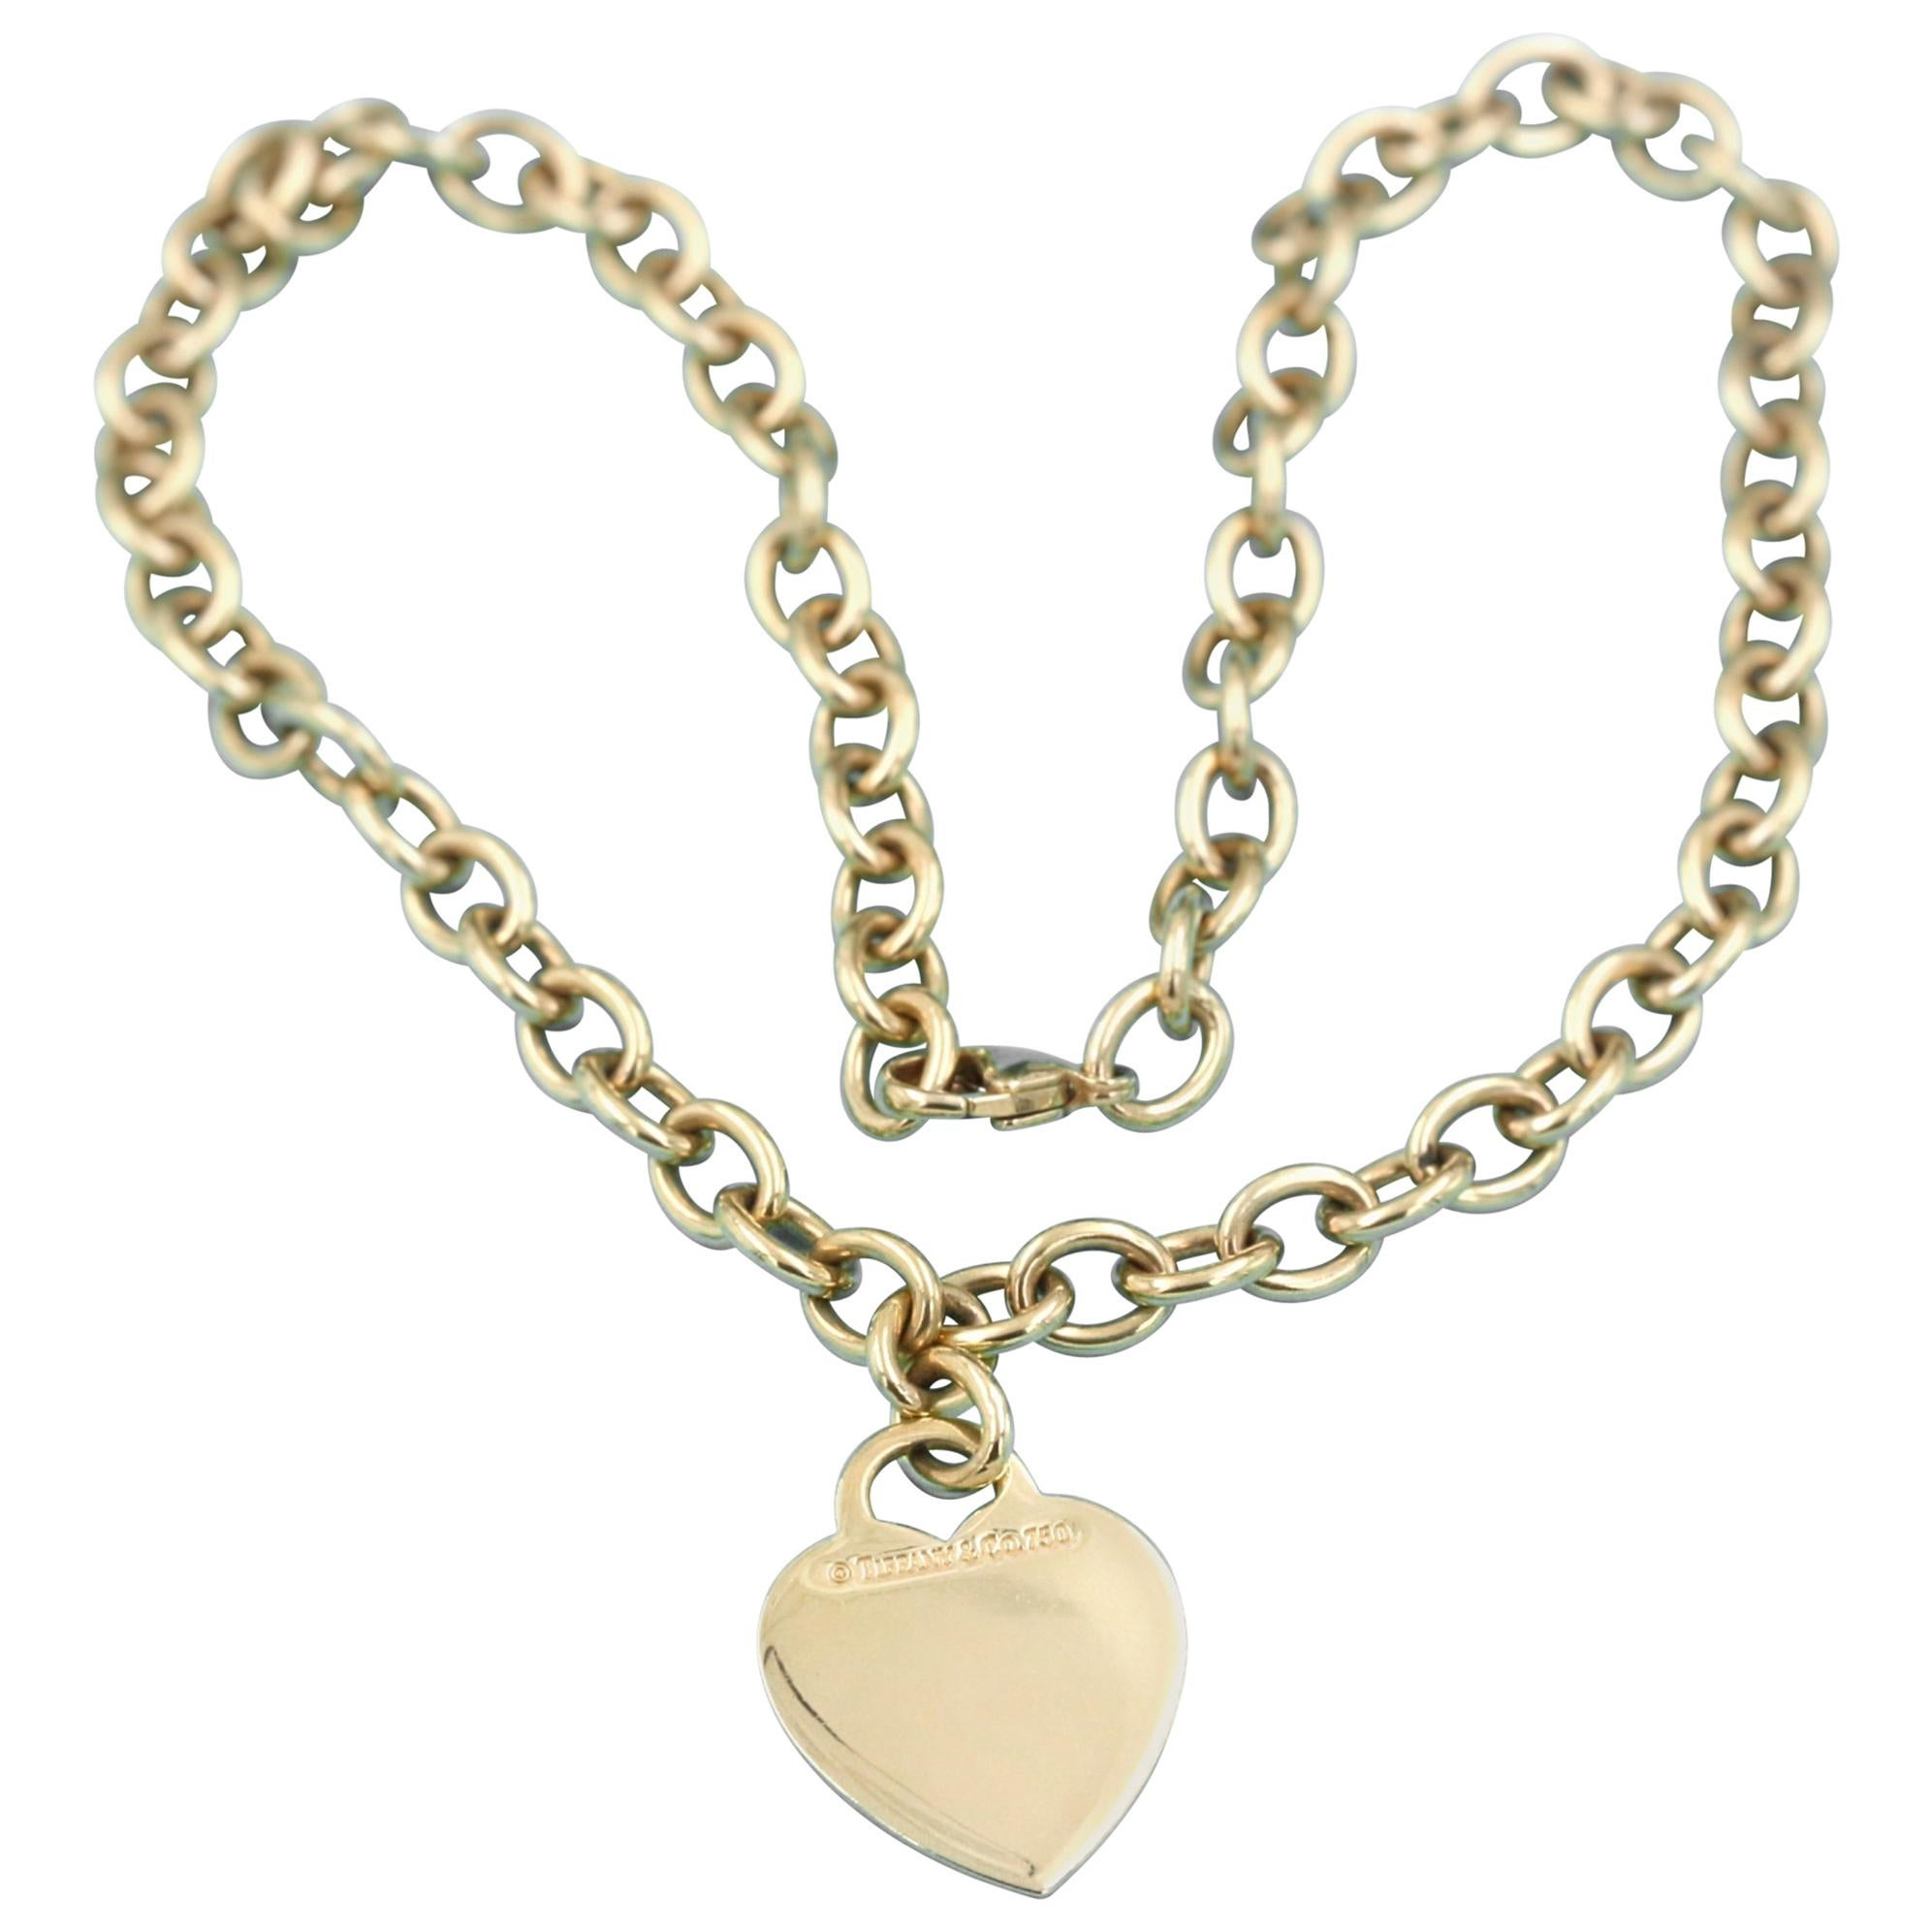 49238398f Tiffany and Co. 18 Yellow Karat Gold Heart Tag and Circle Link Chain  Necklace For Sale at 1stdibs